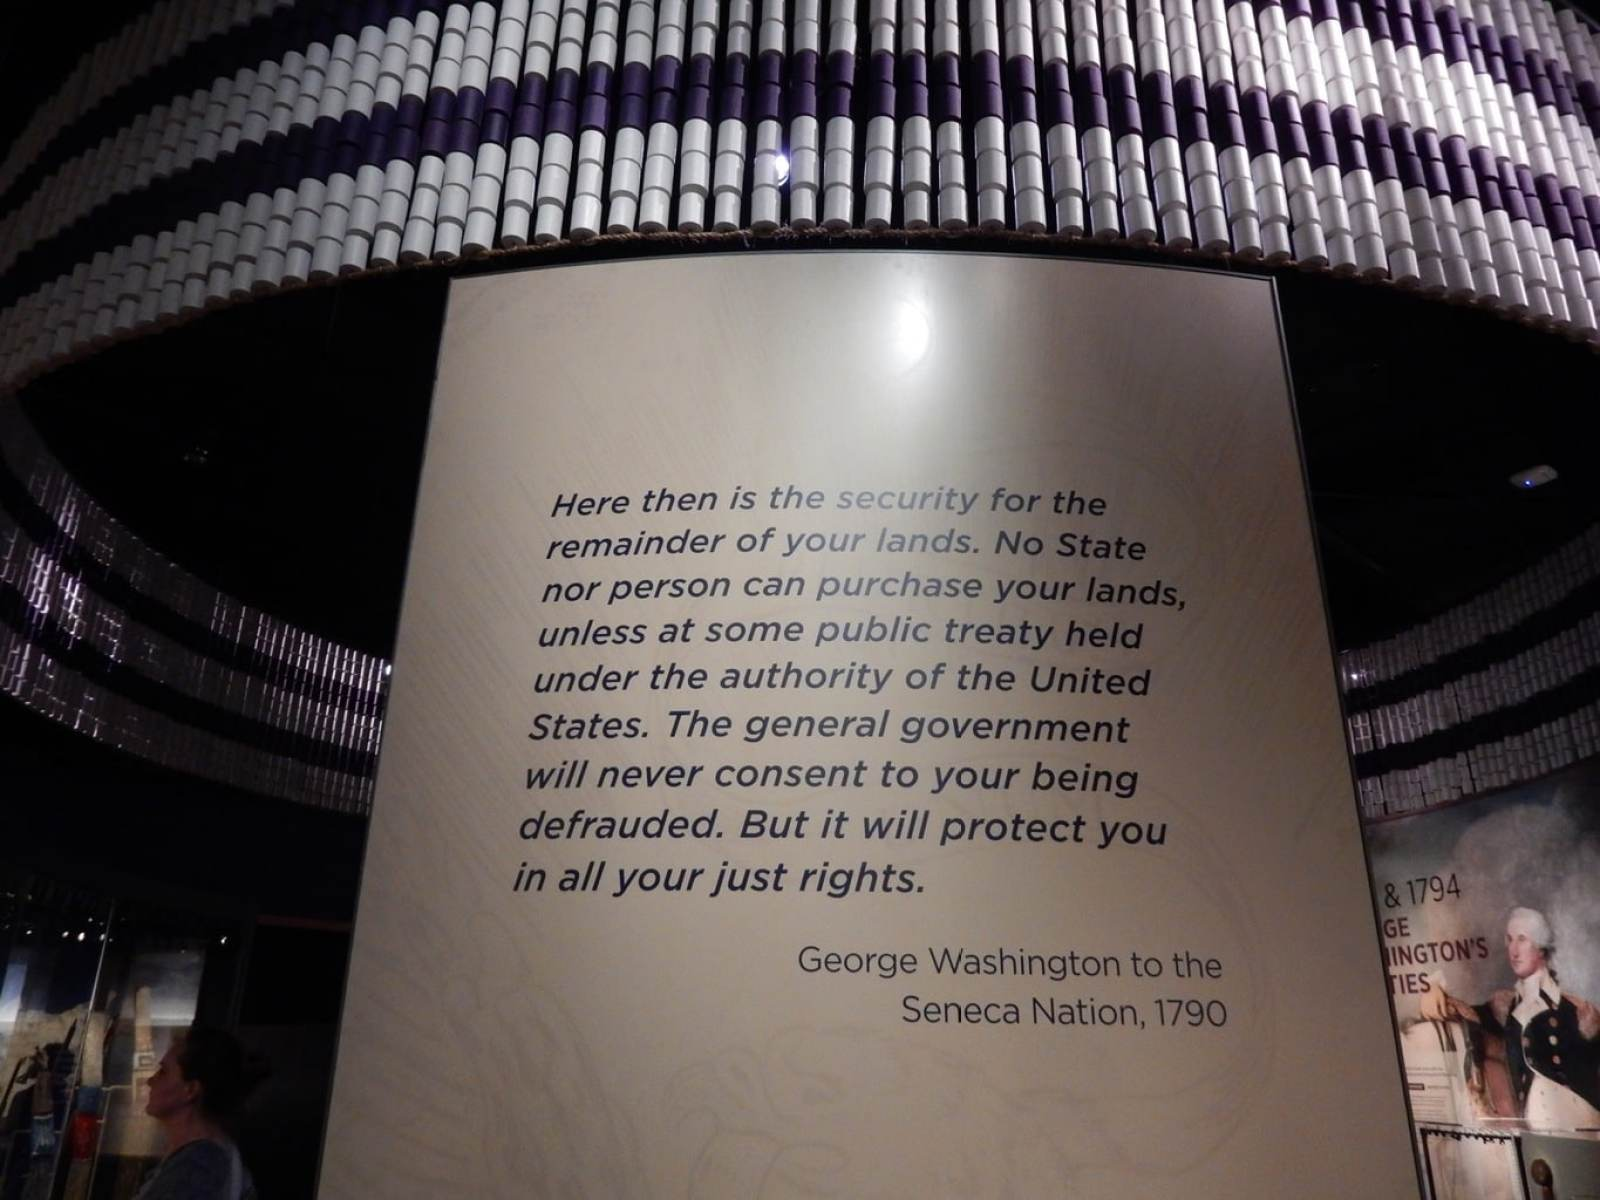 George Washington Letter to Seneca Nation 1790 - National Museum of American Indian DC